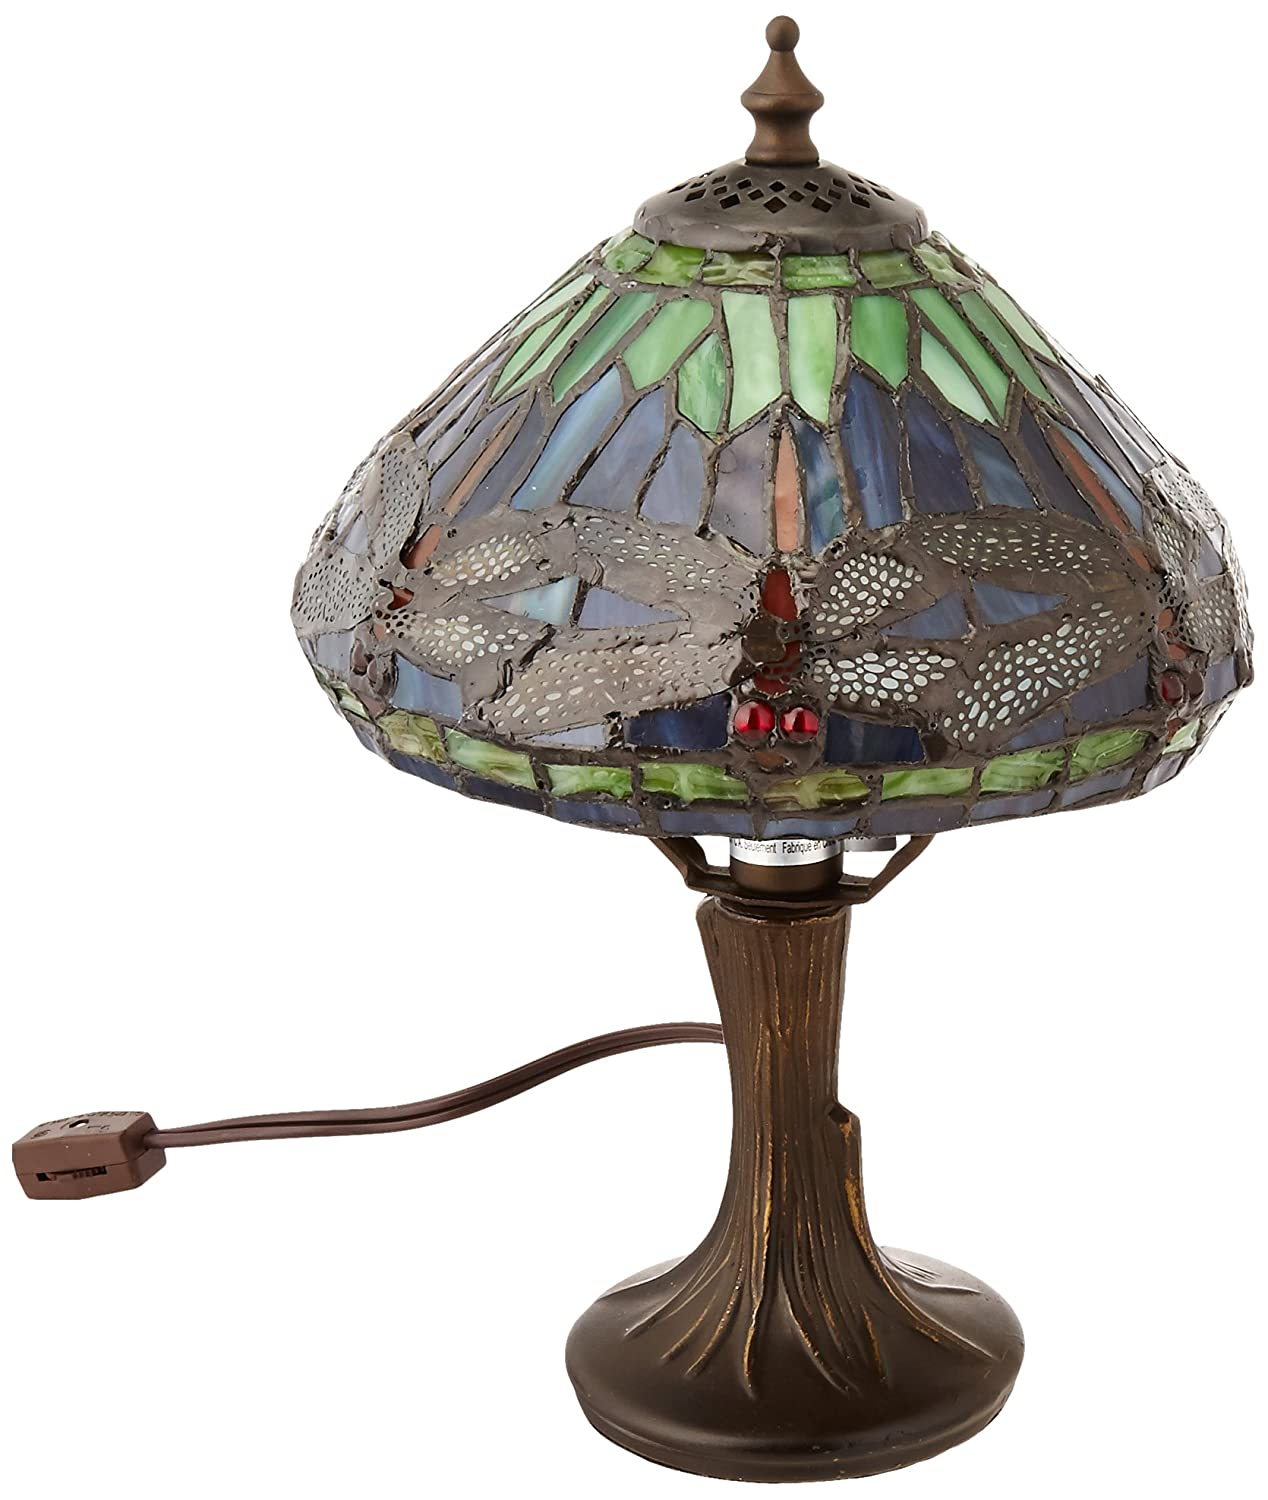 Dale Tiffany 7601/521 Dragonfly Table Lamp, Antique Brass And Art Glass  Shade   Dragon Fly Lamps   Amazon.com